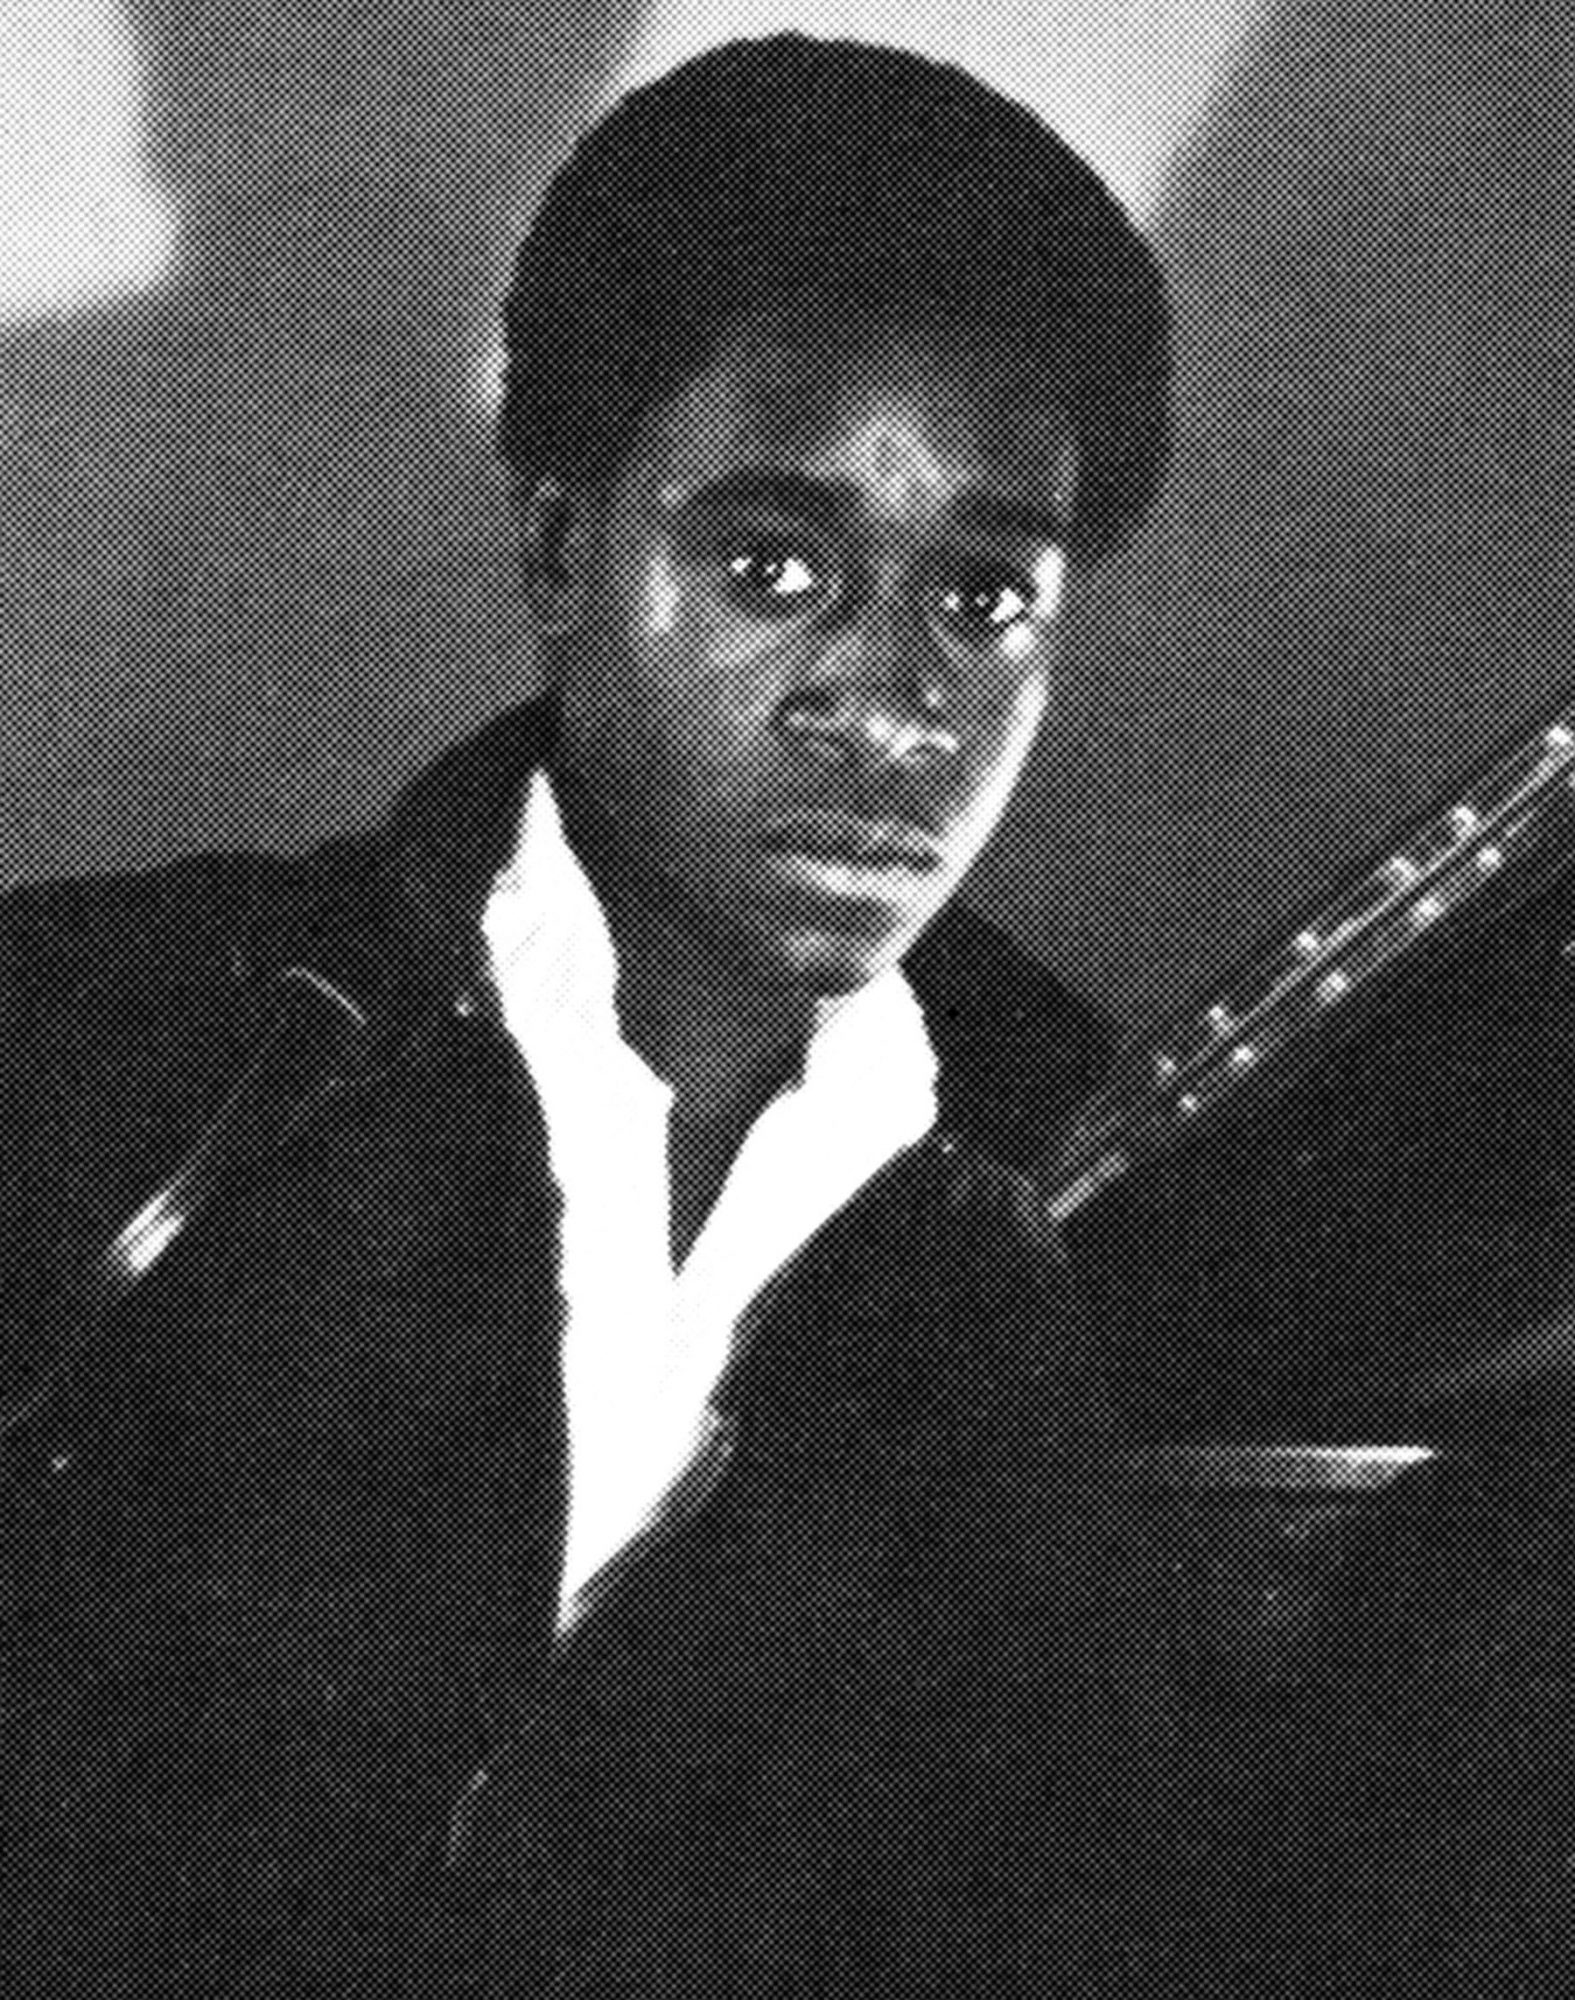 Don Cheadle Senior Year 1981 East High School, Denver, CO Credit: Seth Poppel/Yearbook Library